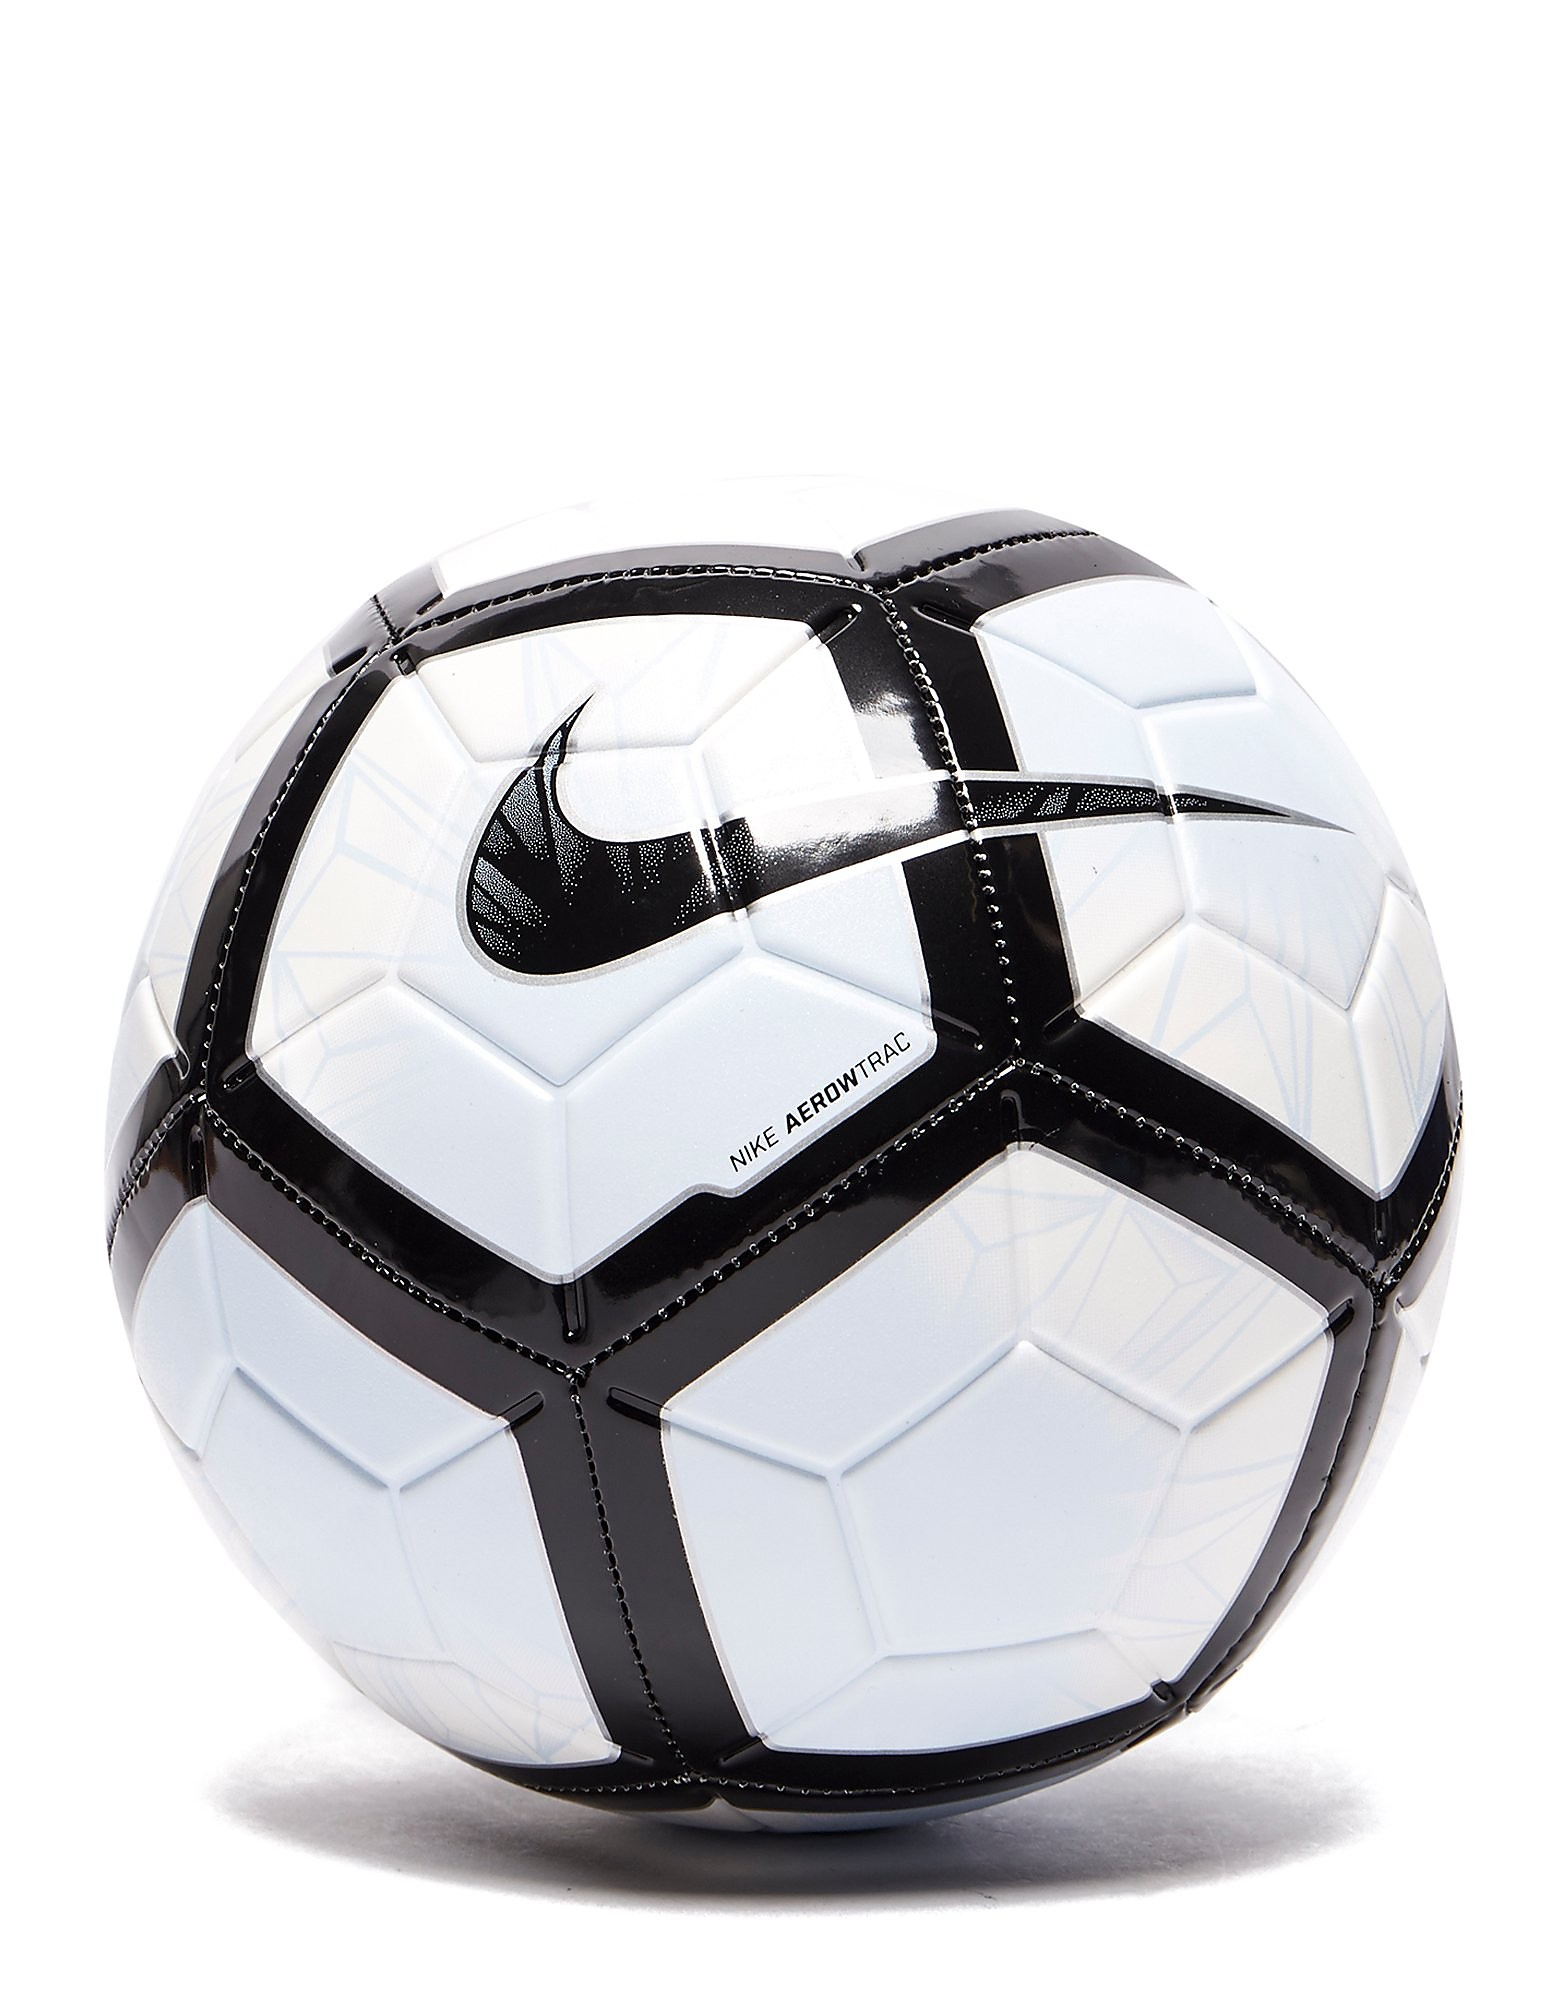 Nike CR7 Prestige Football